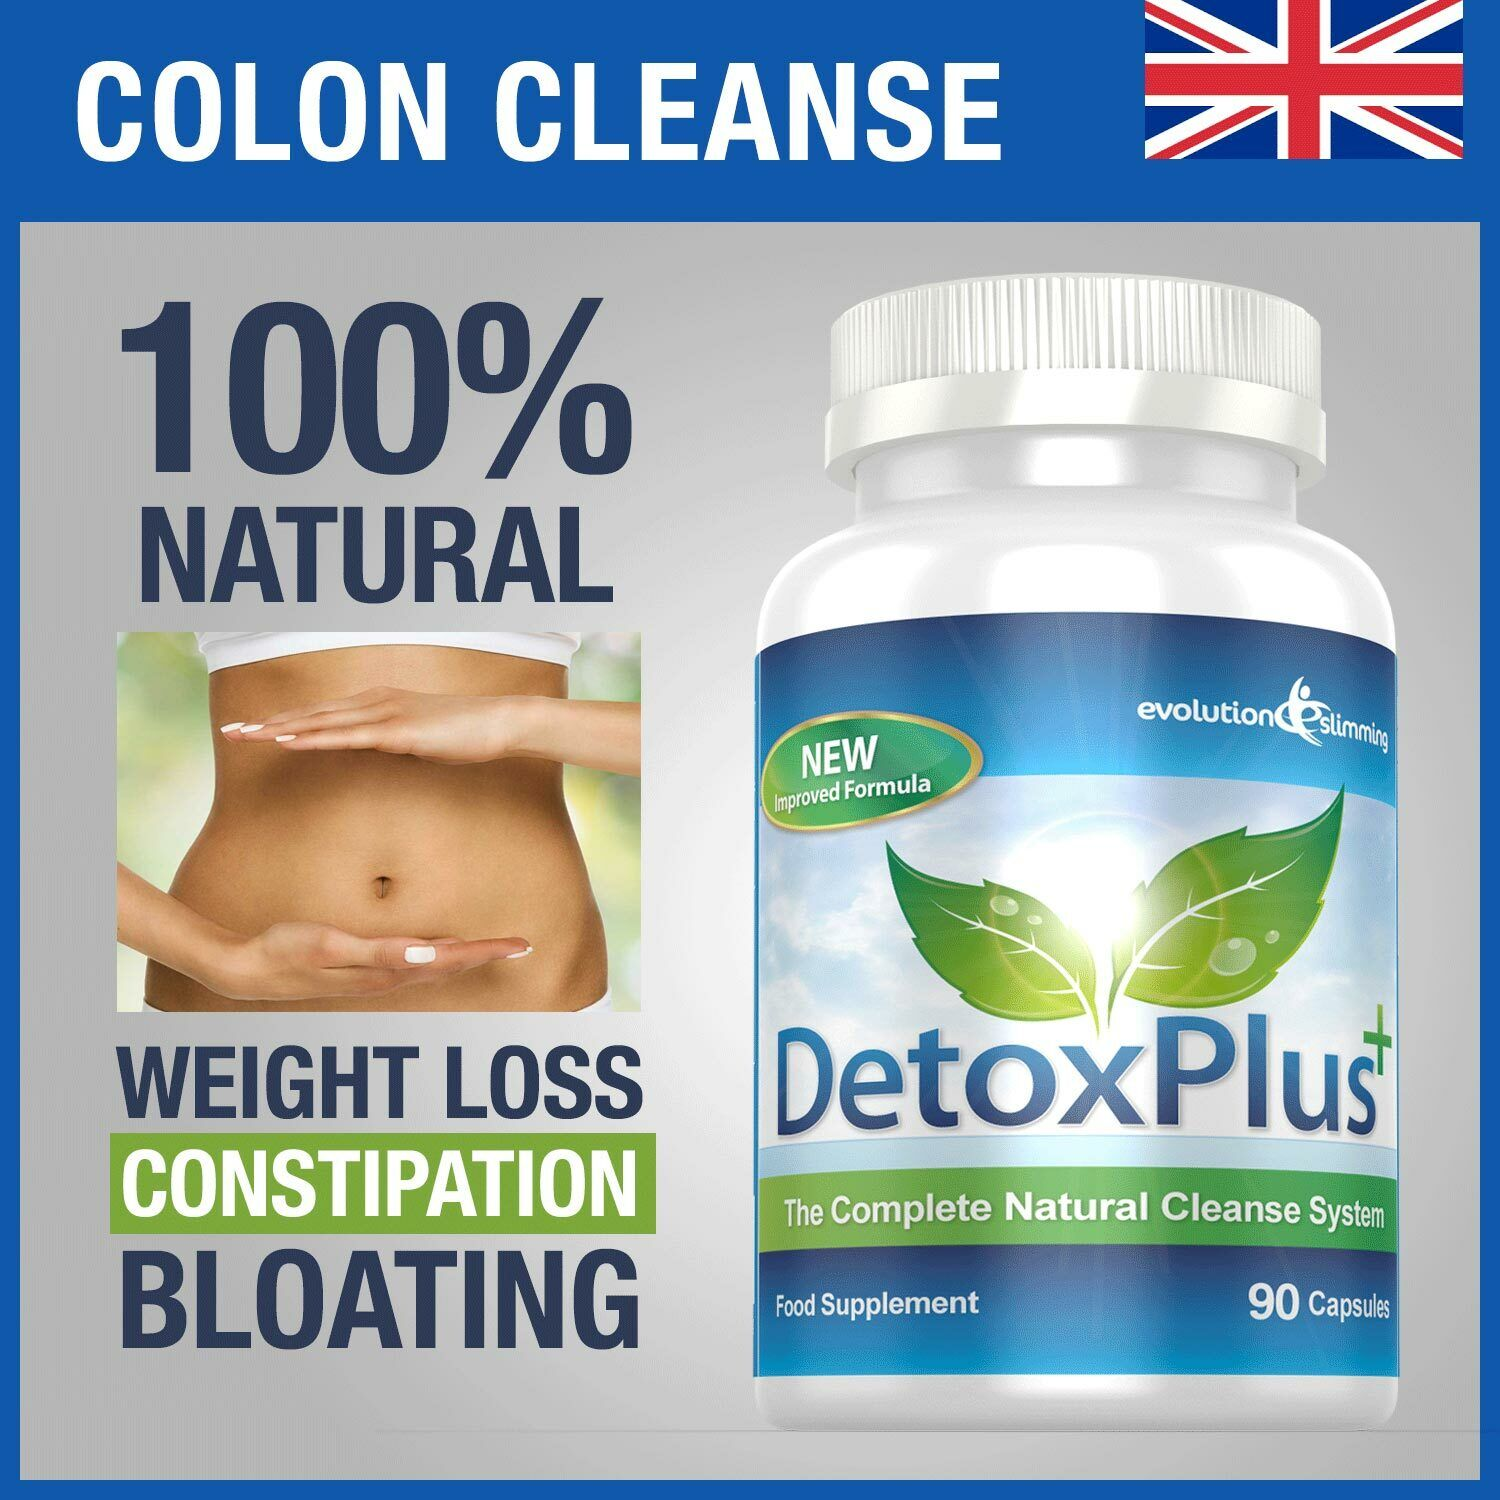 slimming colon cleanse)